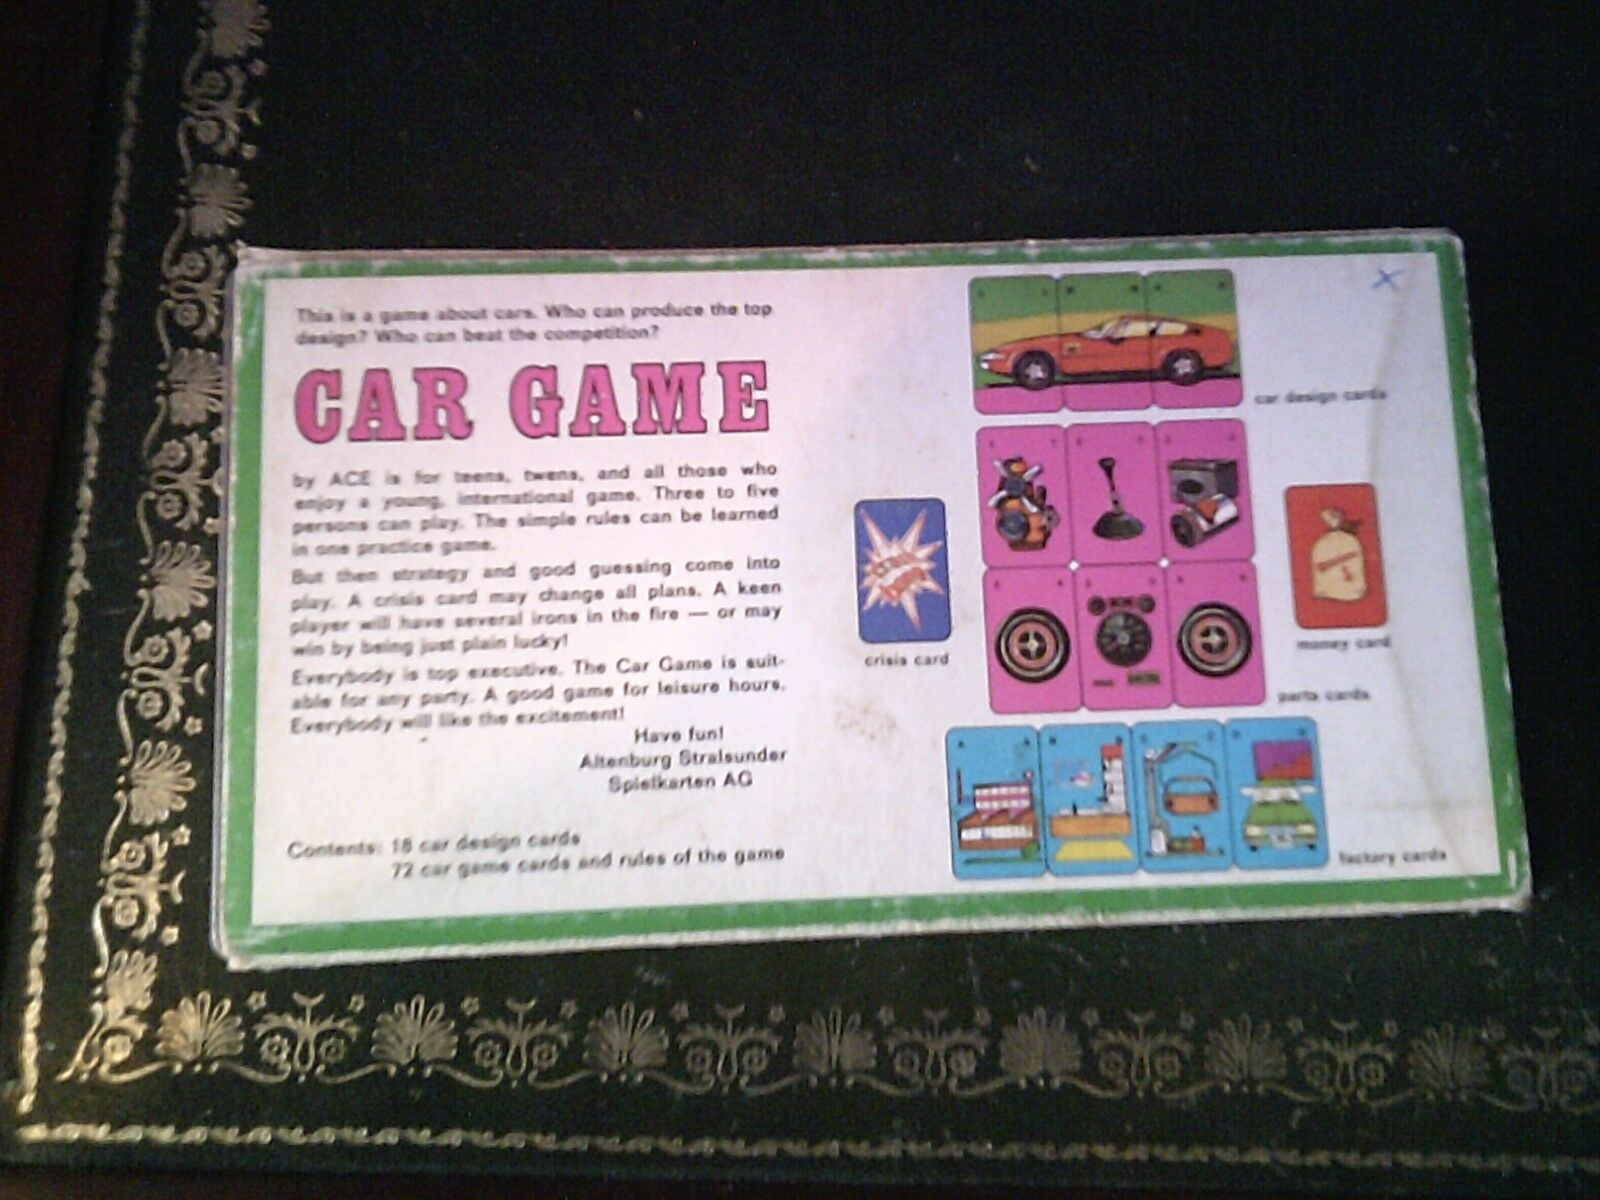 Car Card Vintage Game by Ace, Vintage Card Card Game ba70cb